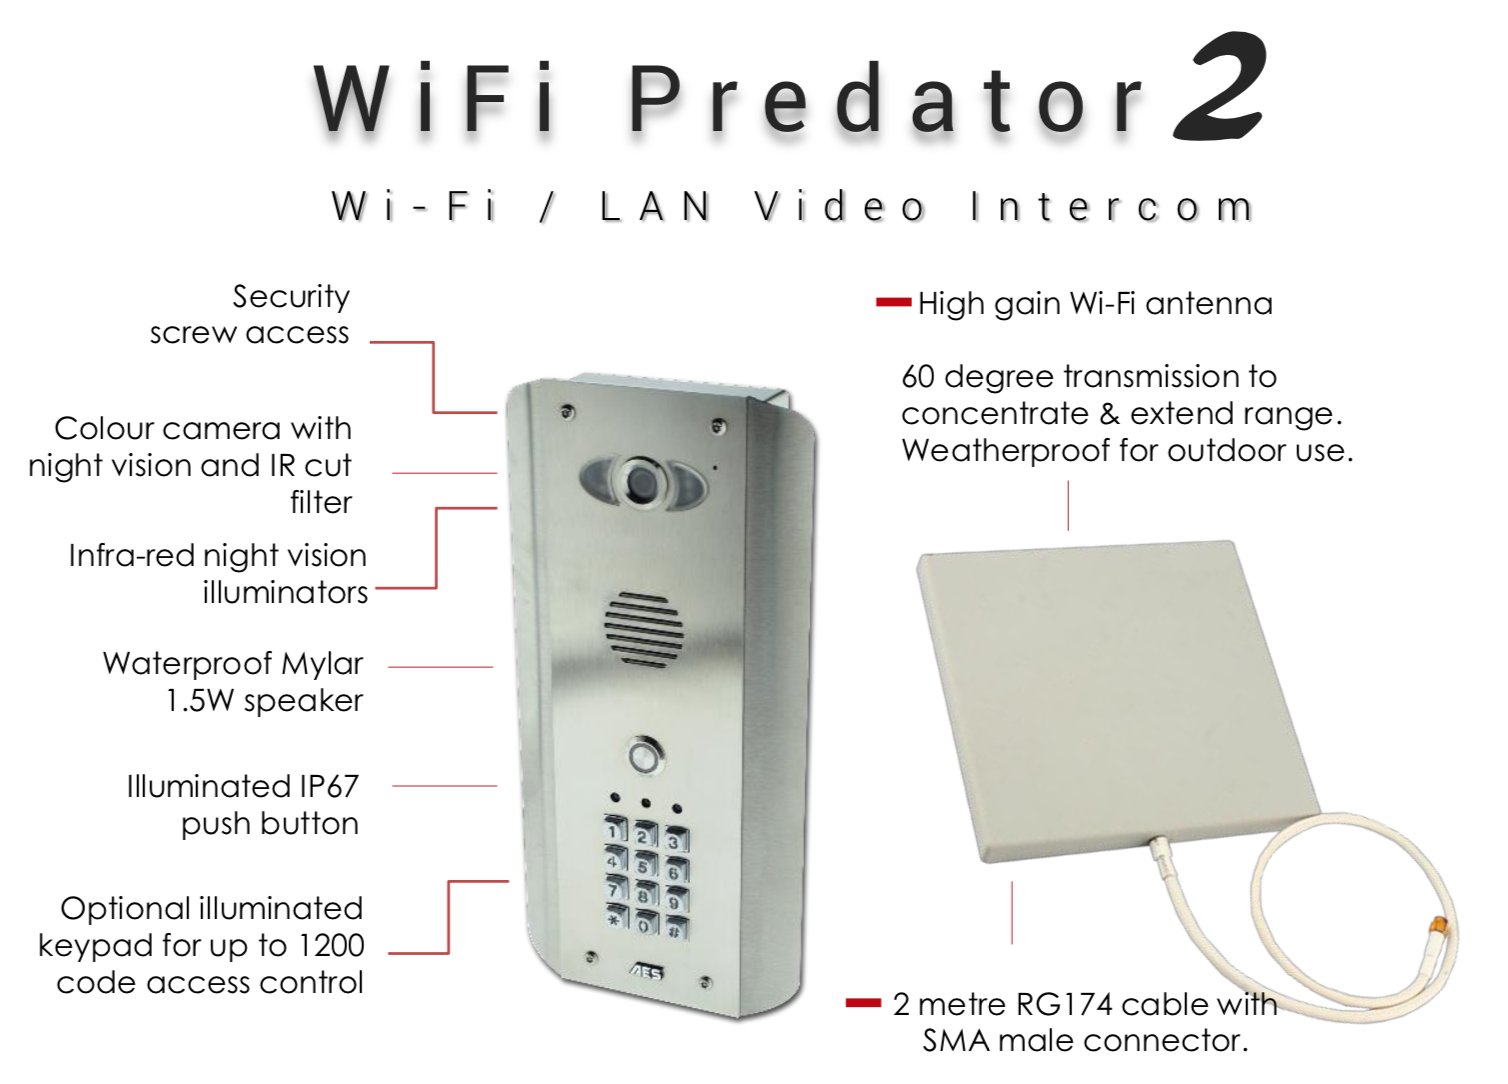 WIFI AES PREDATOR 2 INTERCOM